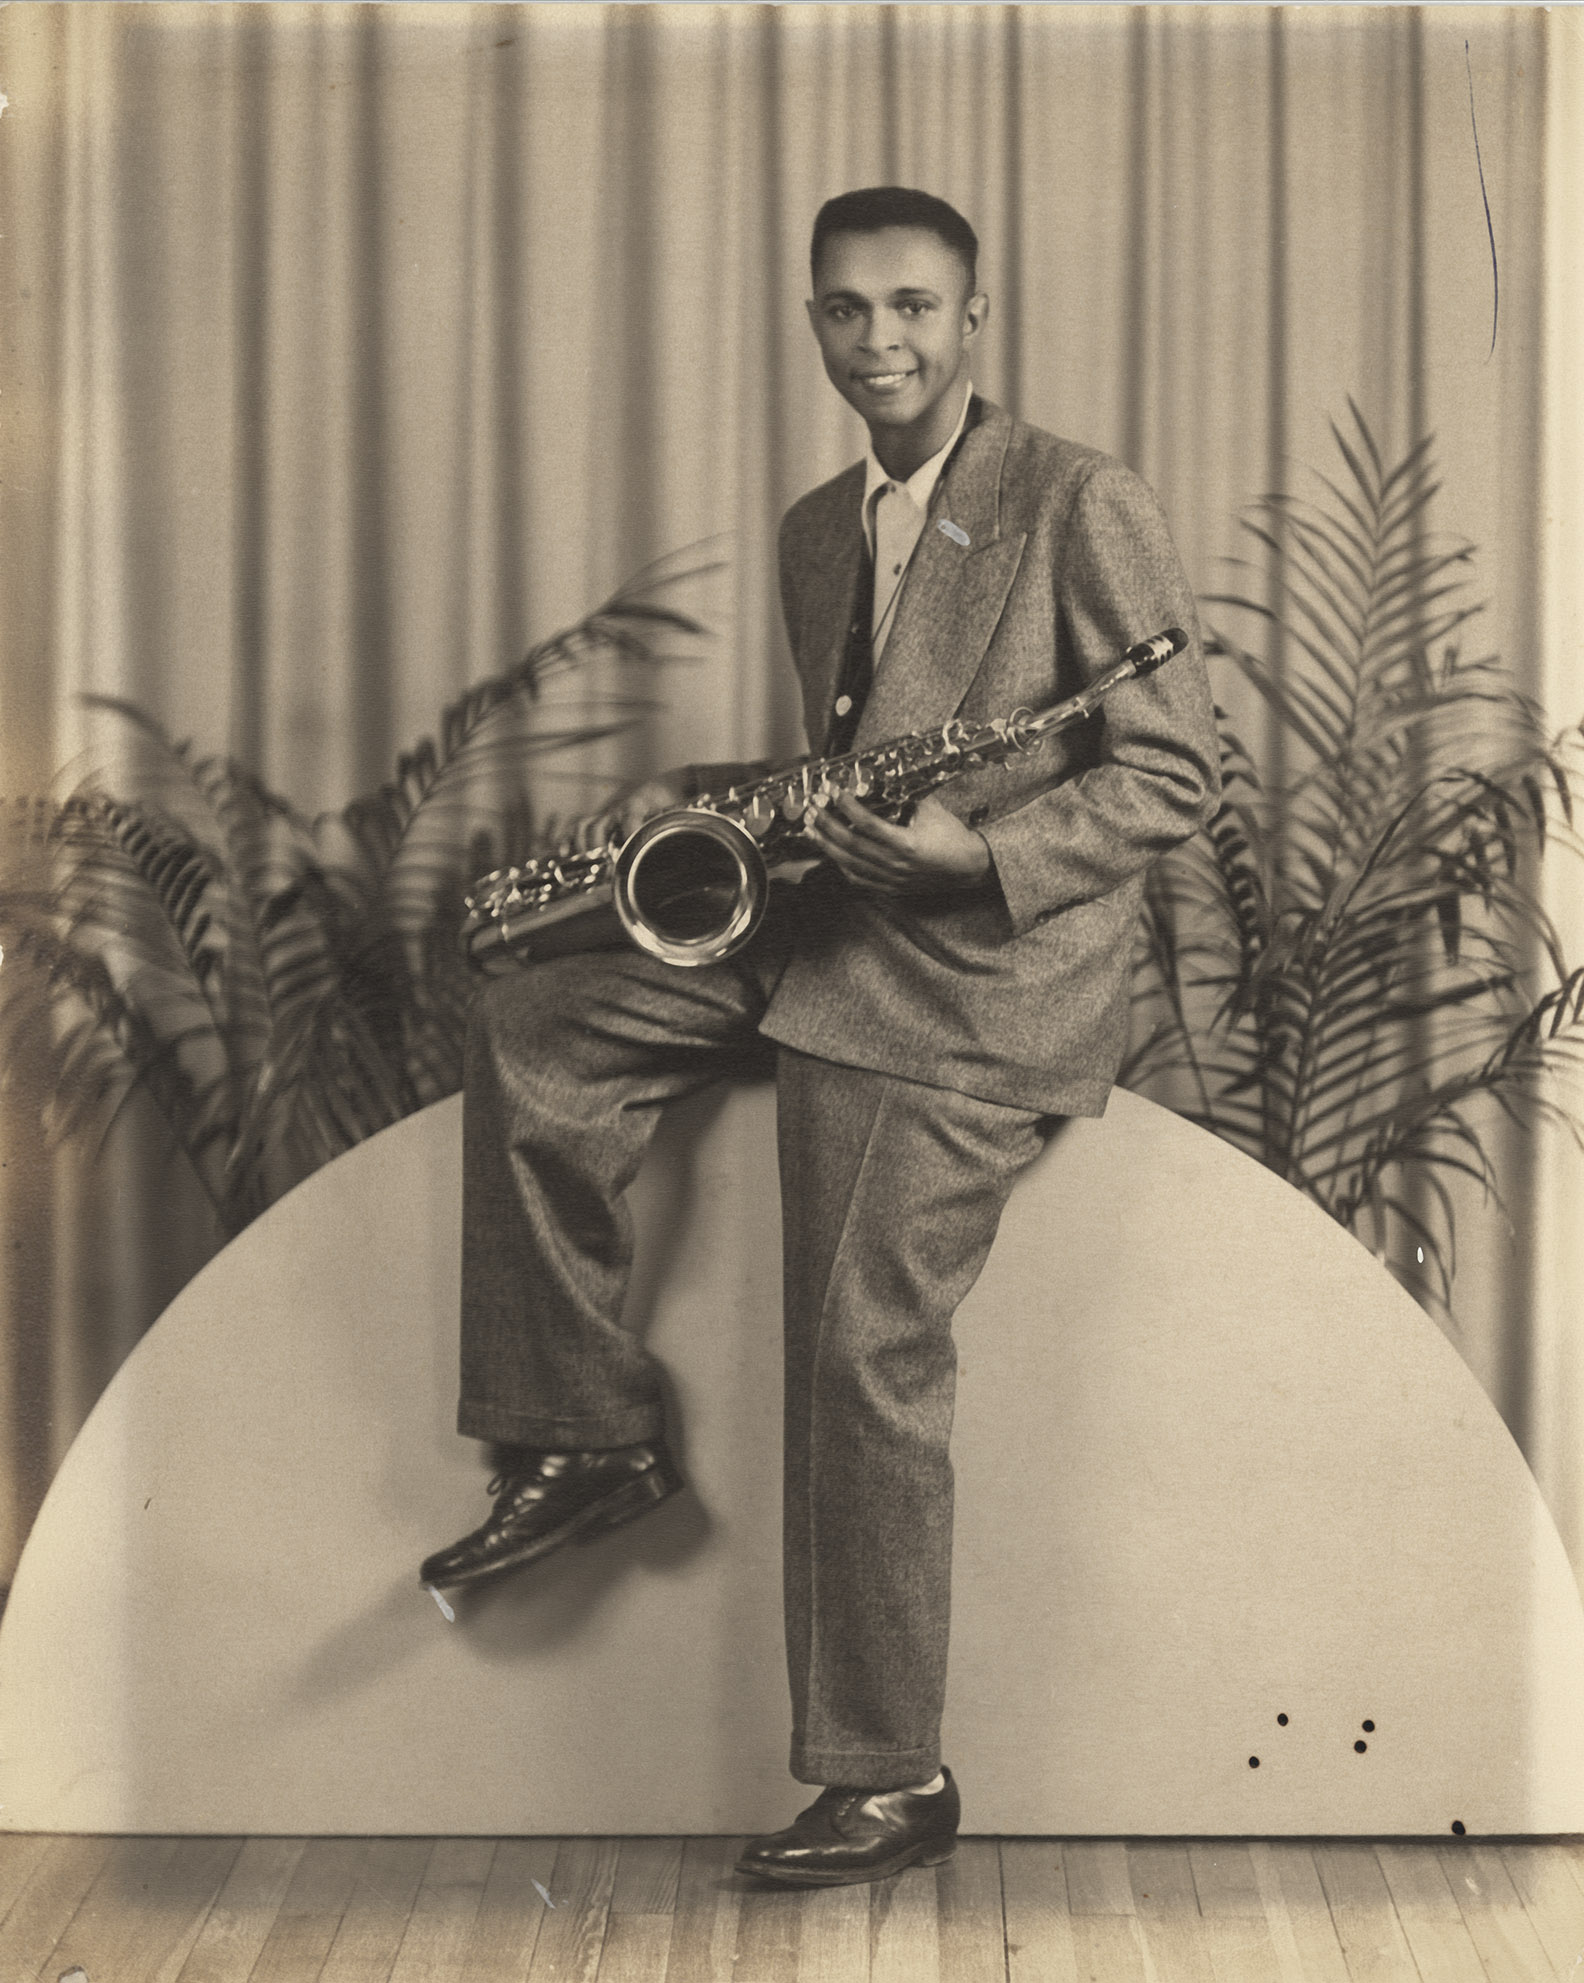 Depiction of Tiyo Atallah Salah-El playing saxophone in high school